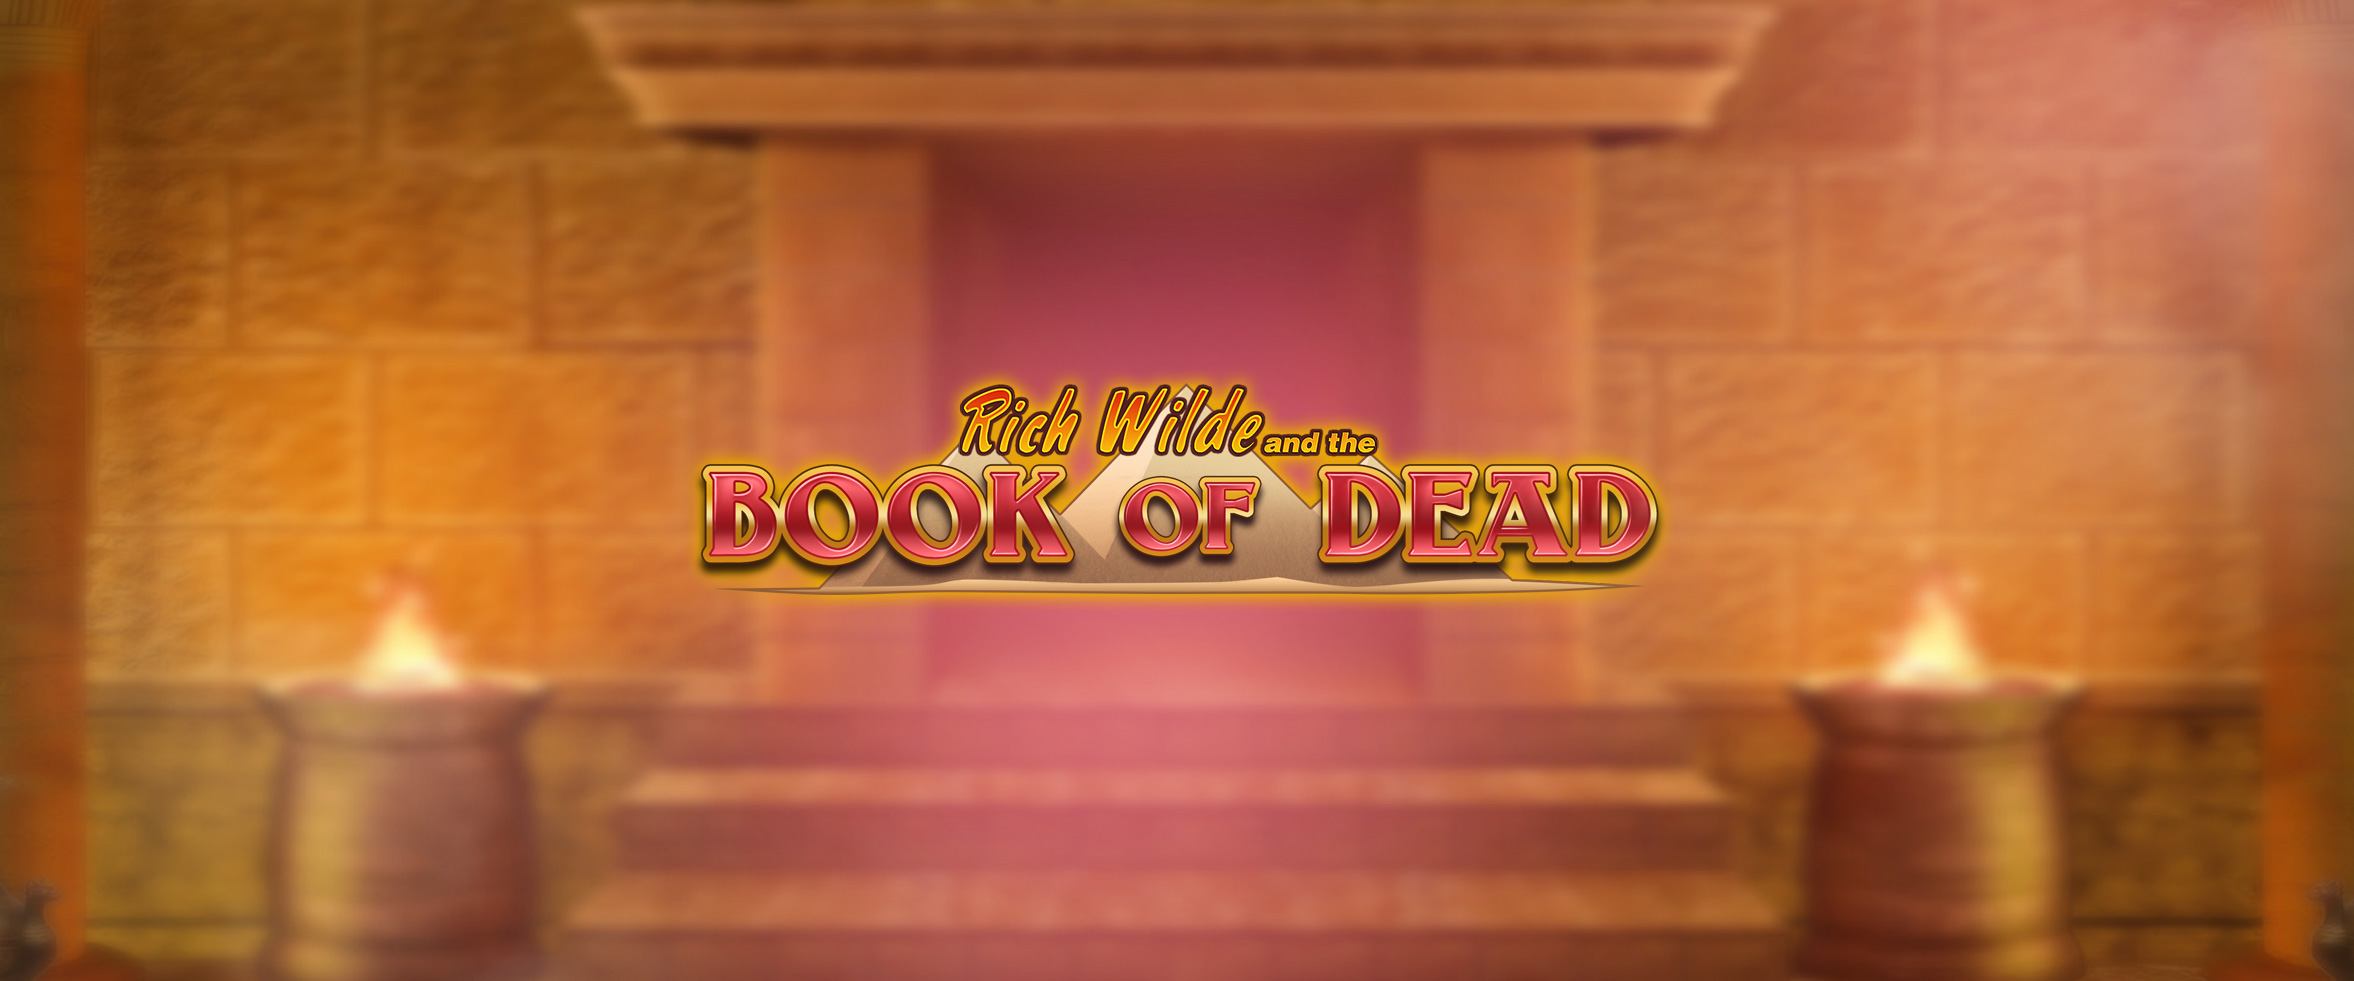 Storgevinst på Book of Dead hos Wildz